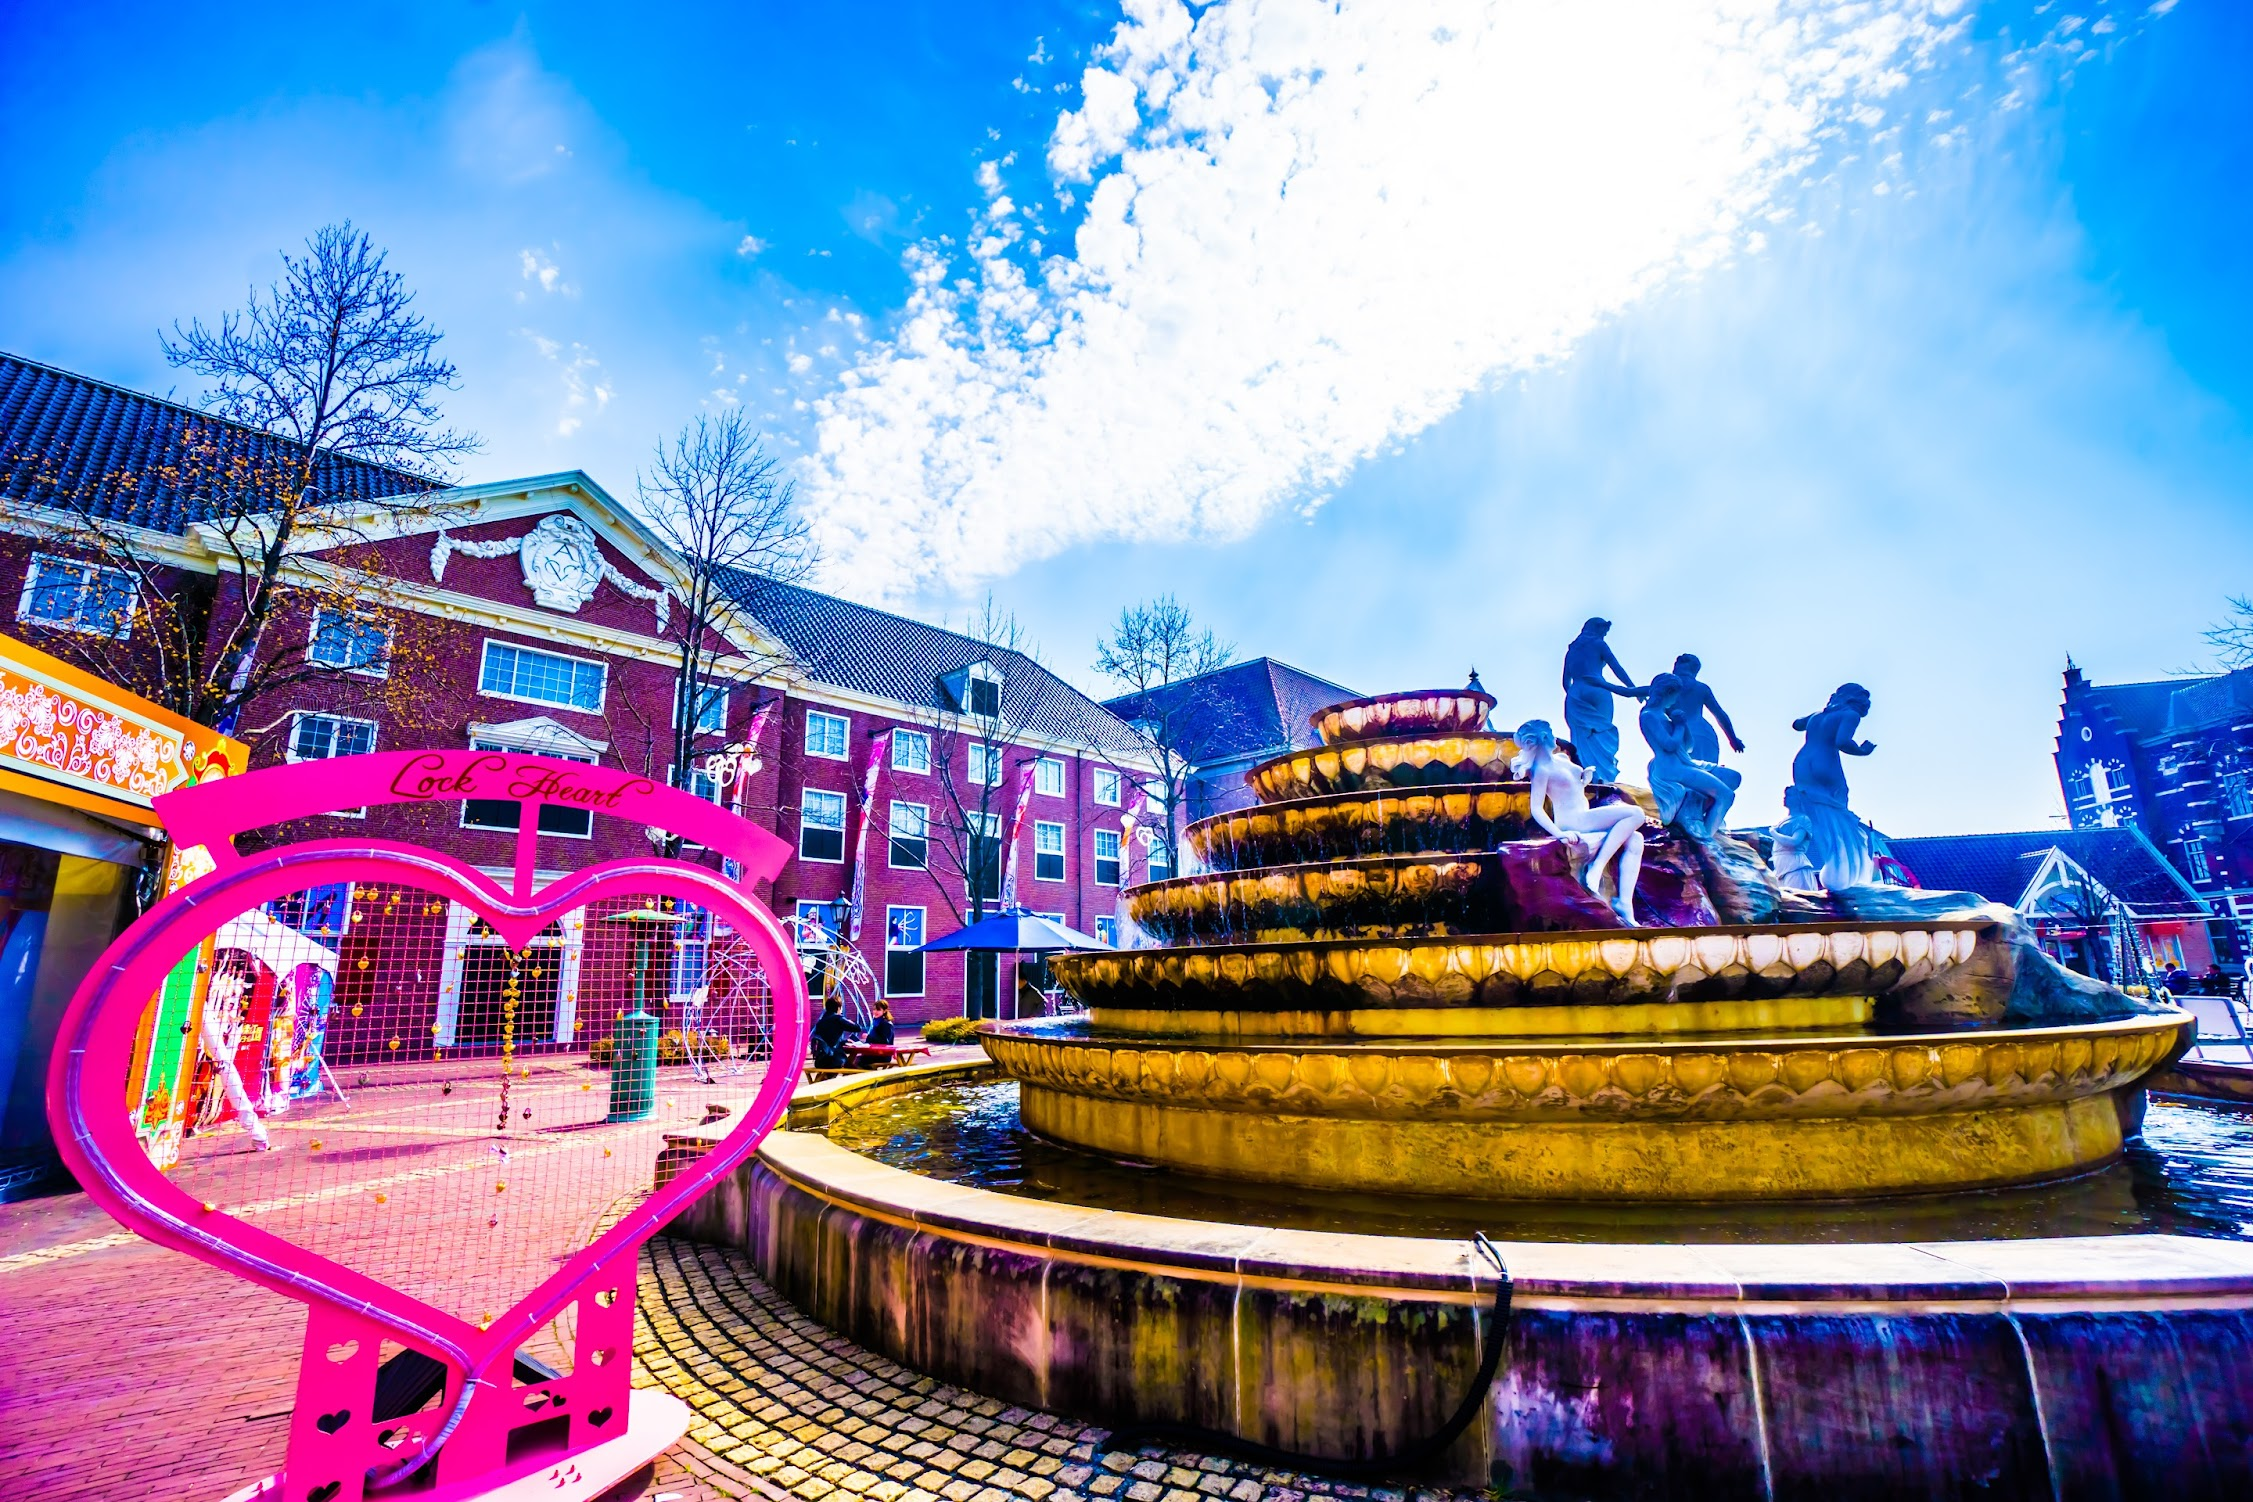 Huis Ten Bosch Fountain square